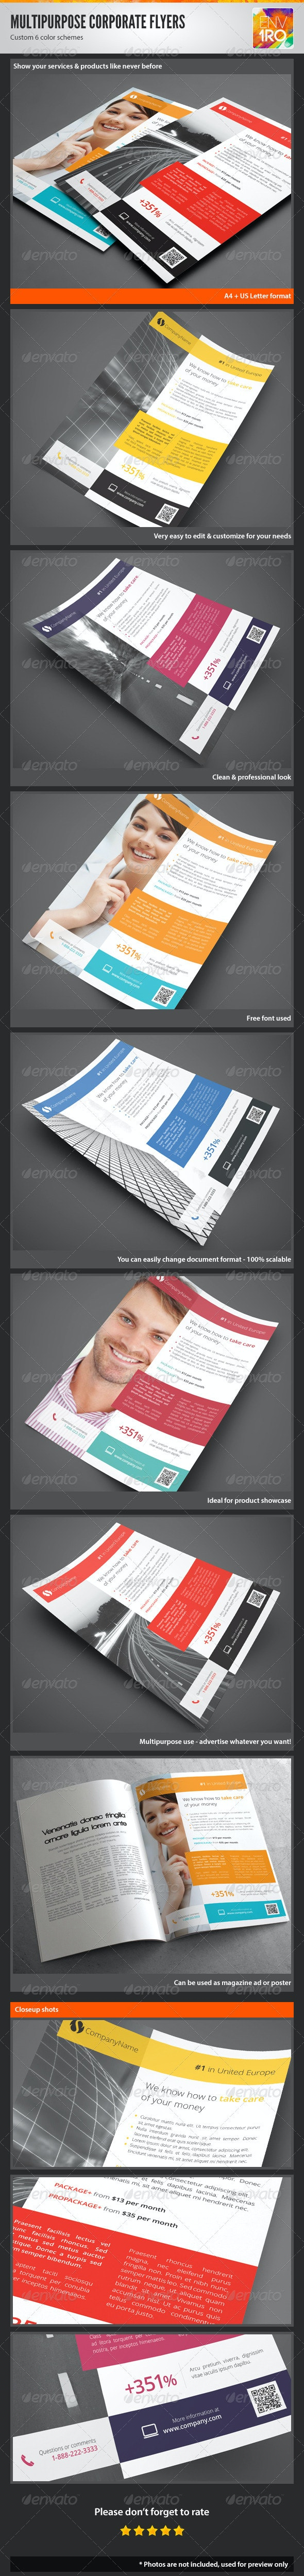 Multipurpose Corporate Flyers, Magazine Ads vol. 6 - Corporate Flyers